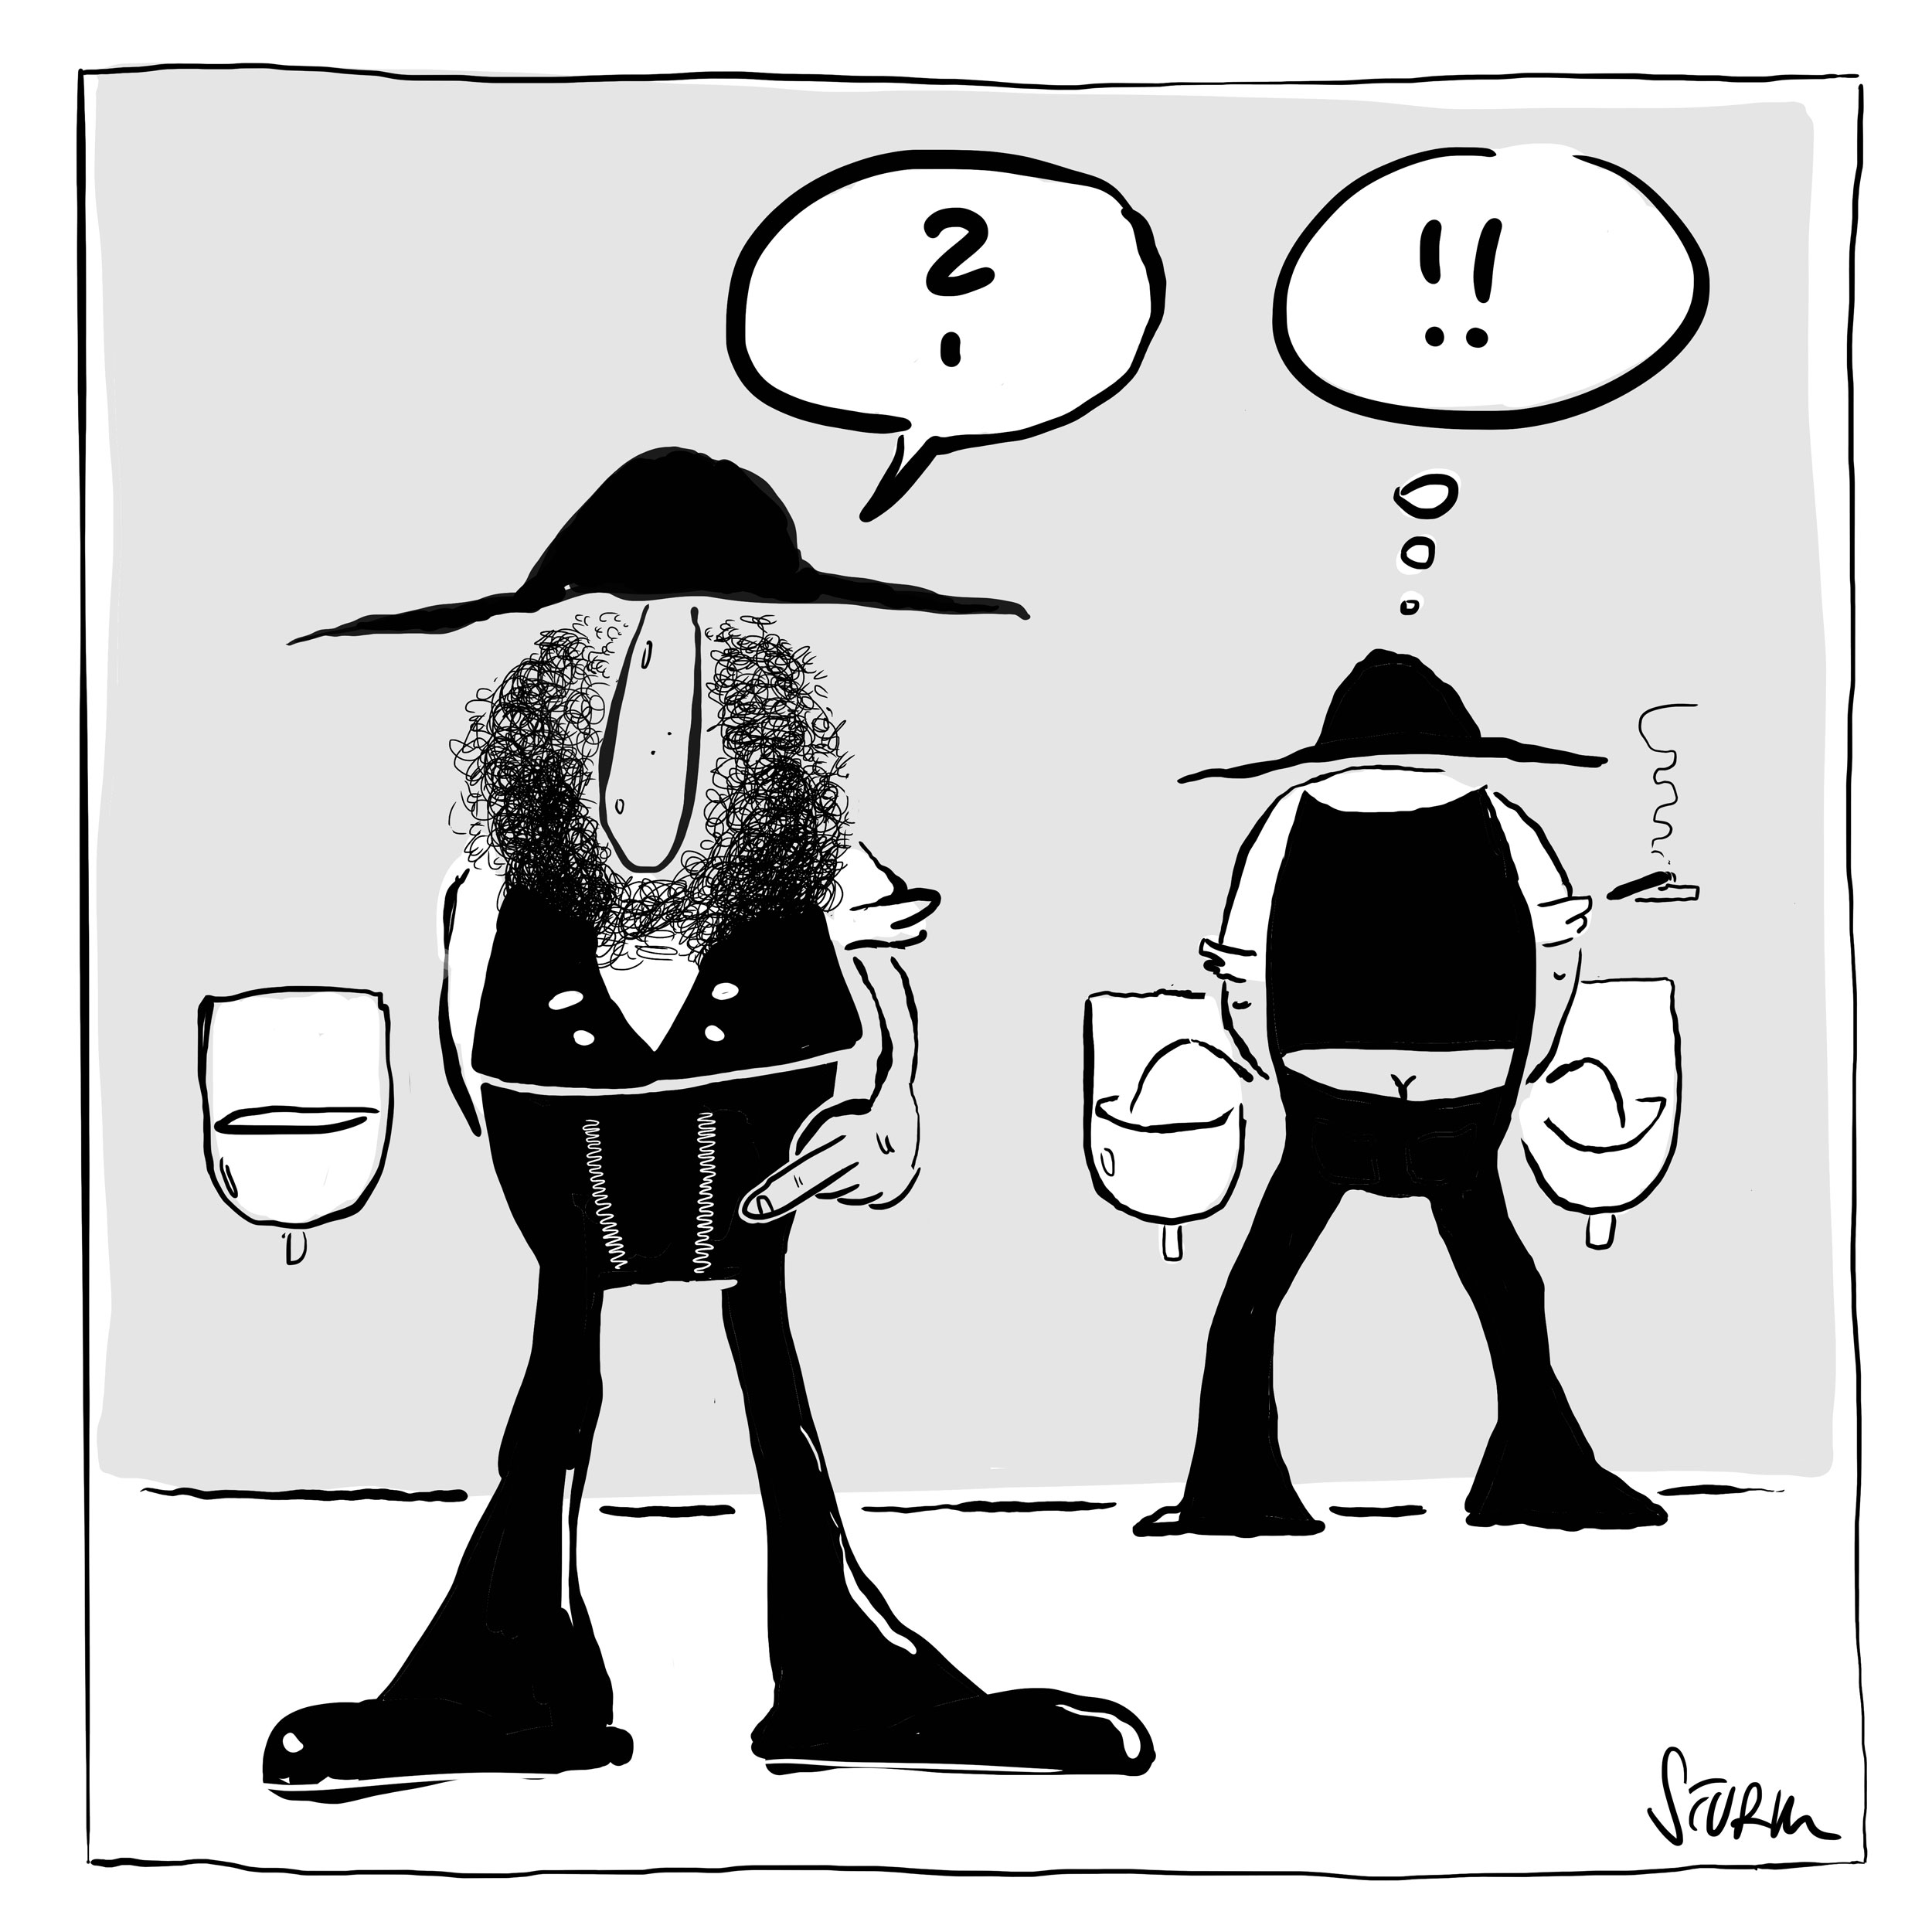 Why do guild pants have two zippers? Cartoon by Philipp Sturm